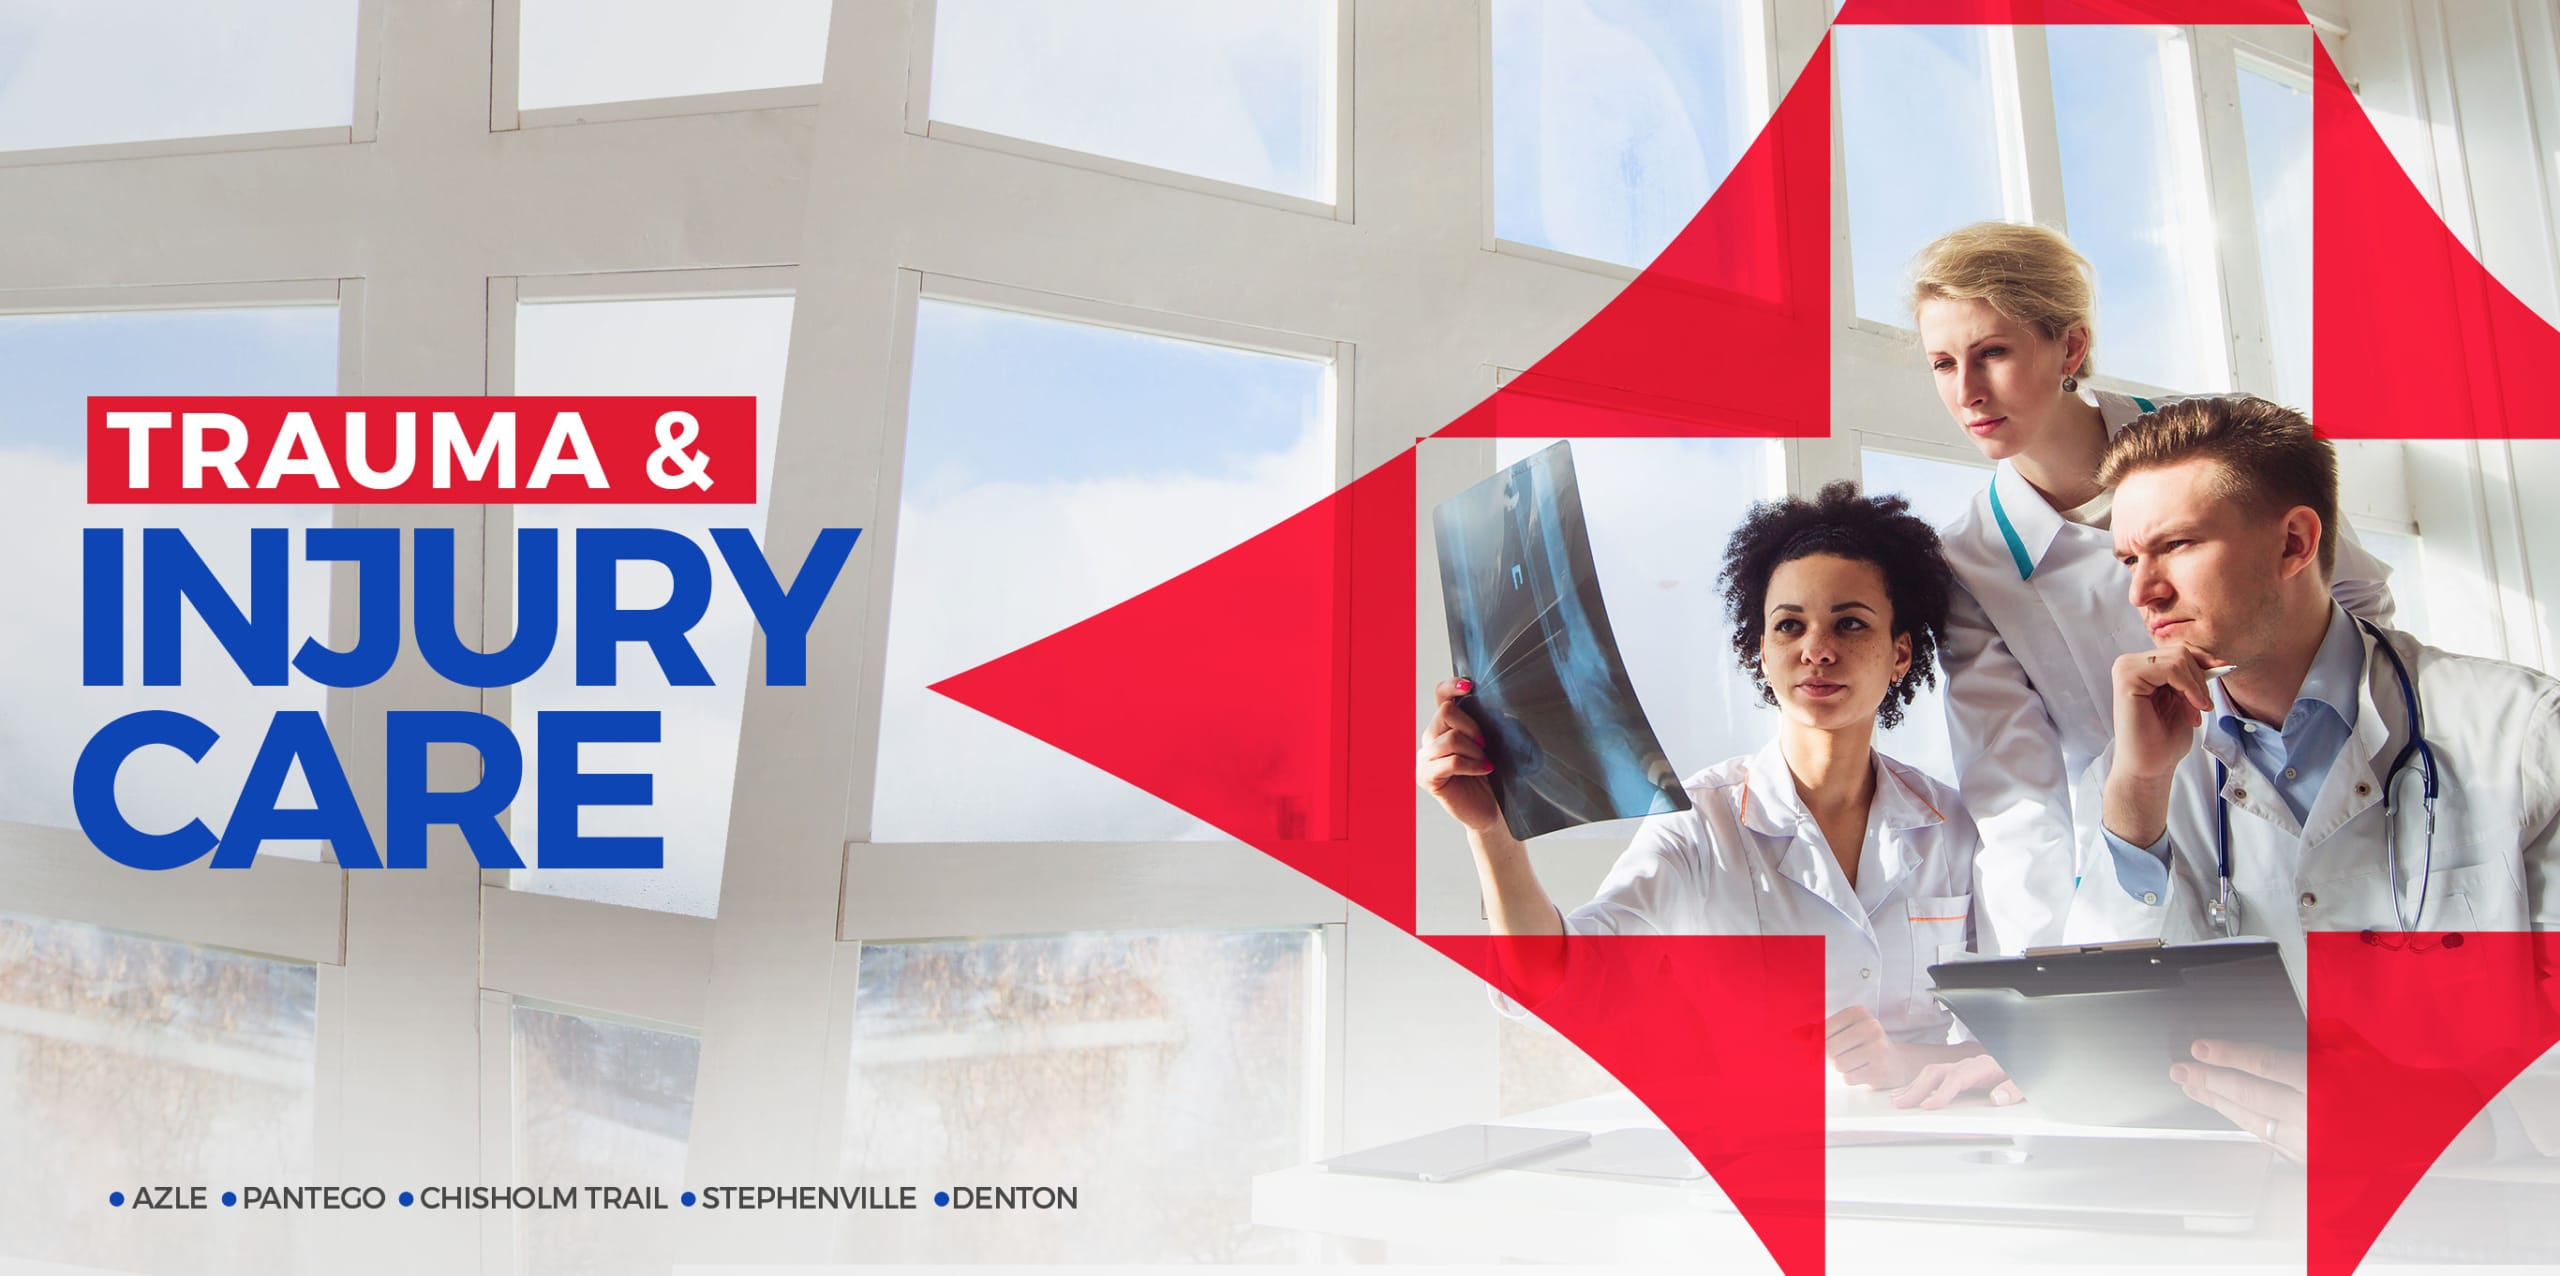 24/7 Emergency Room | Texas | Surepoint Emergency Centers